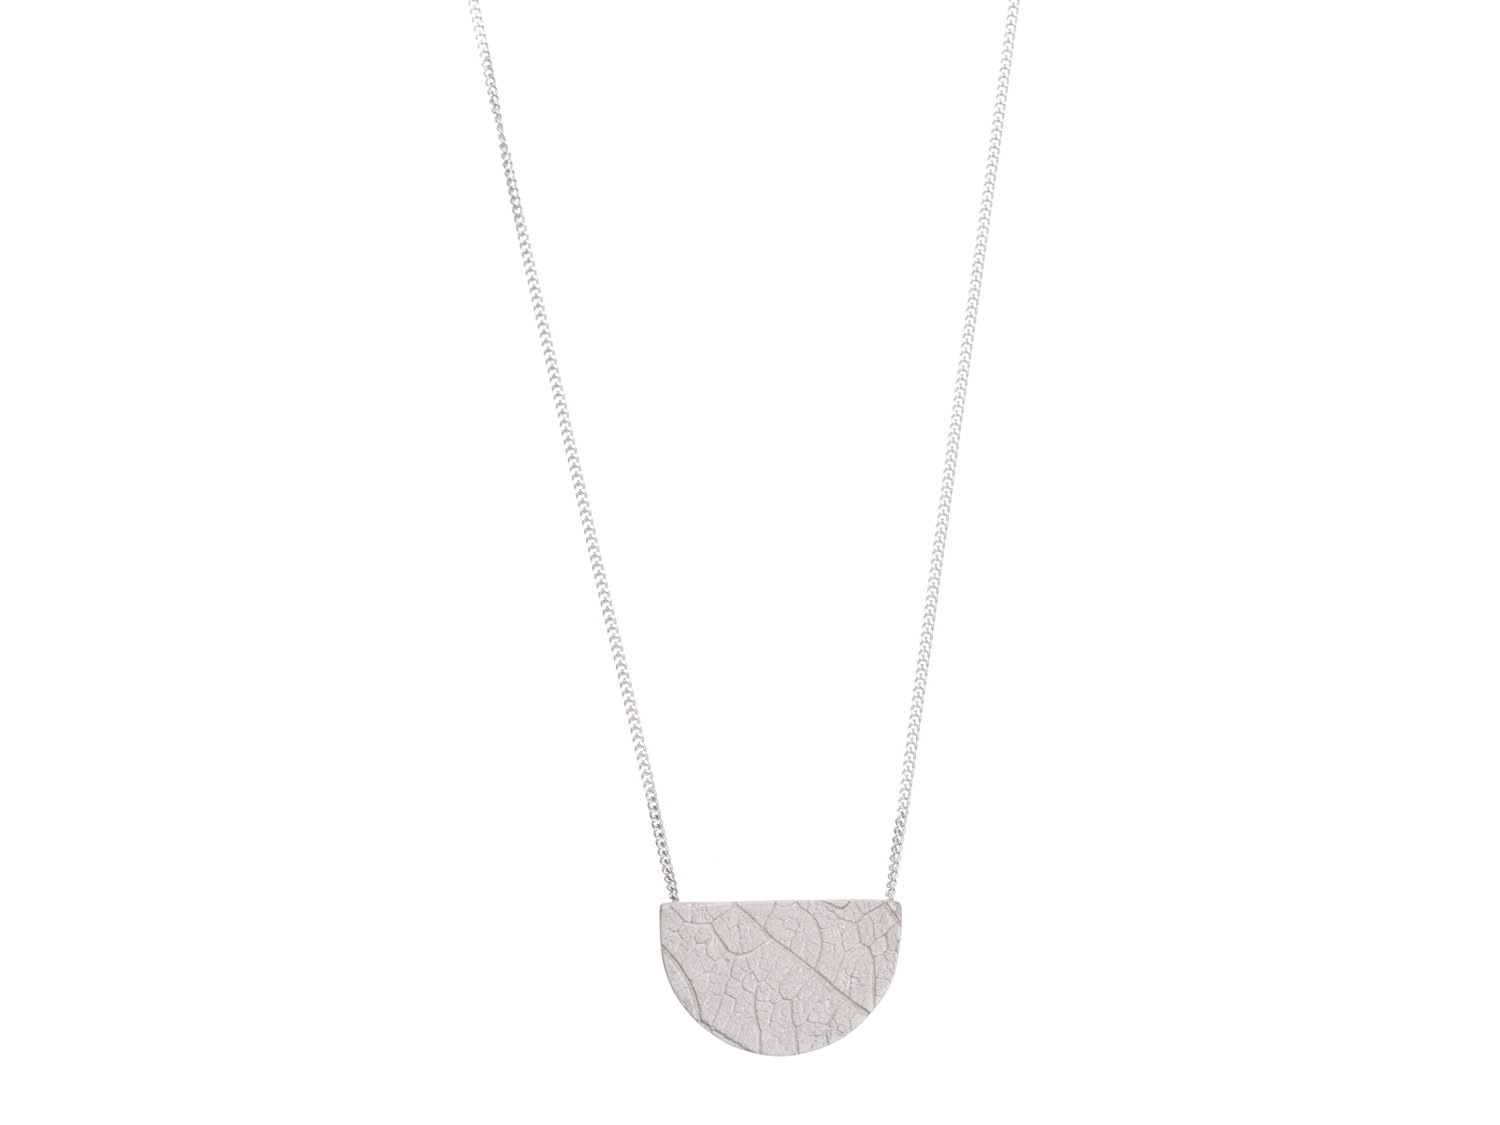 Gold filled sterling silver half moon leaf print necklace